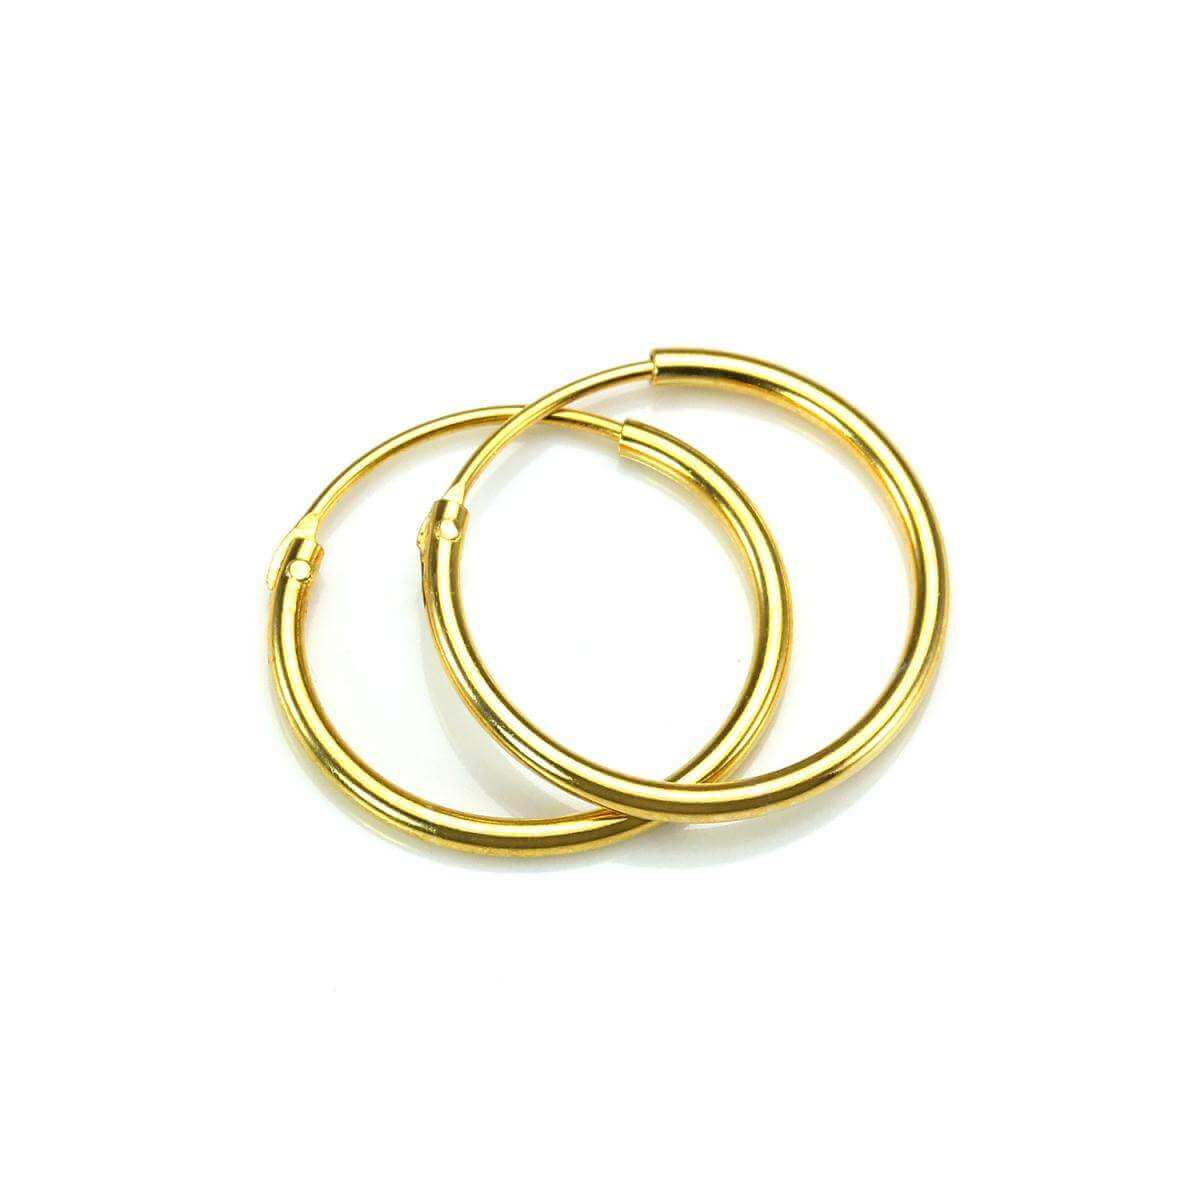 Gold Plated Sterling Silver 16mm Hoop Sleeper Earrings